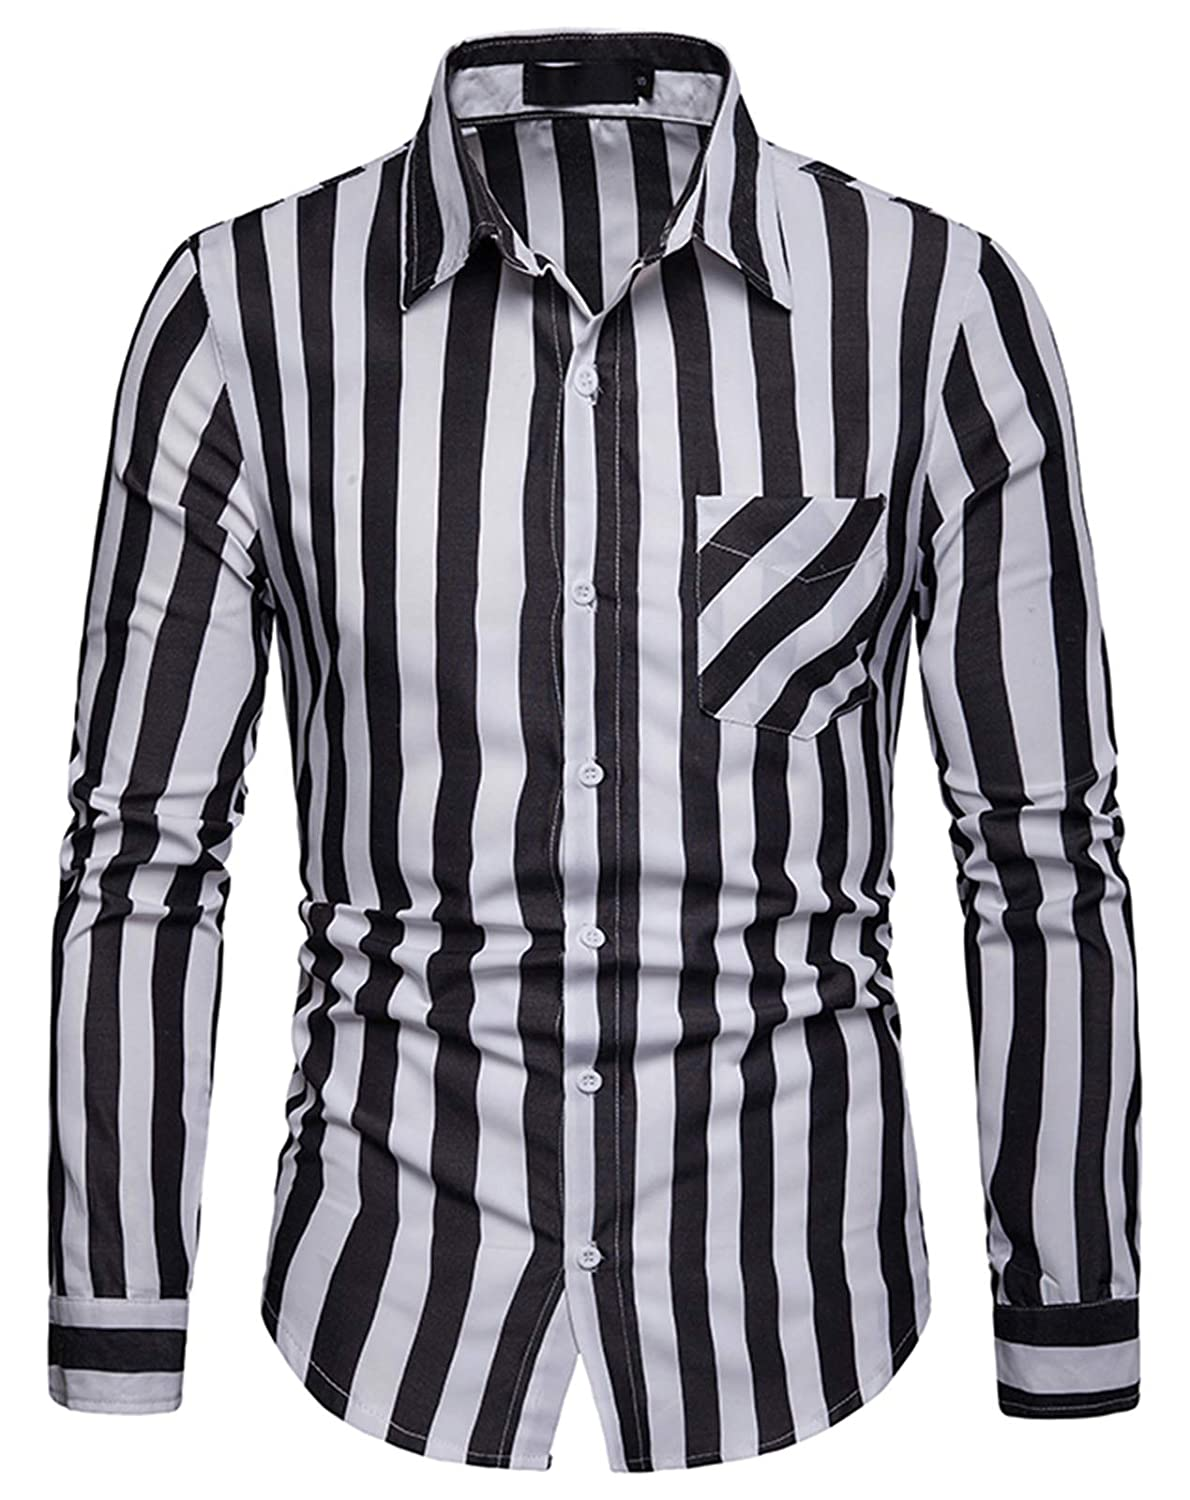 8e2a04d9364 Mens Black And White Striped Dress Shirts - DREAMWORKS